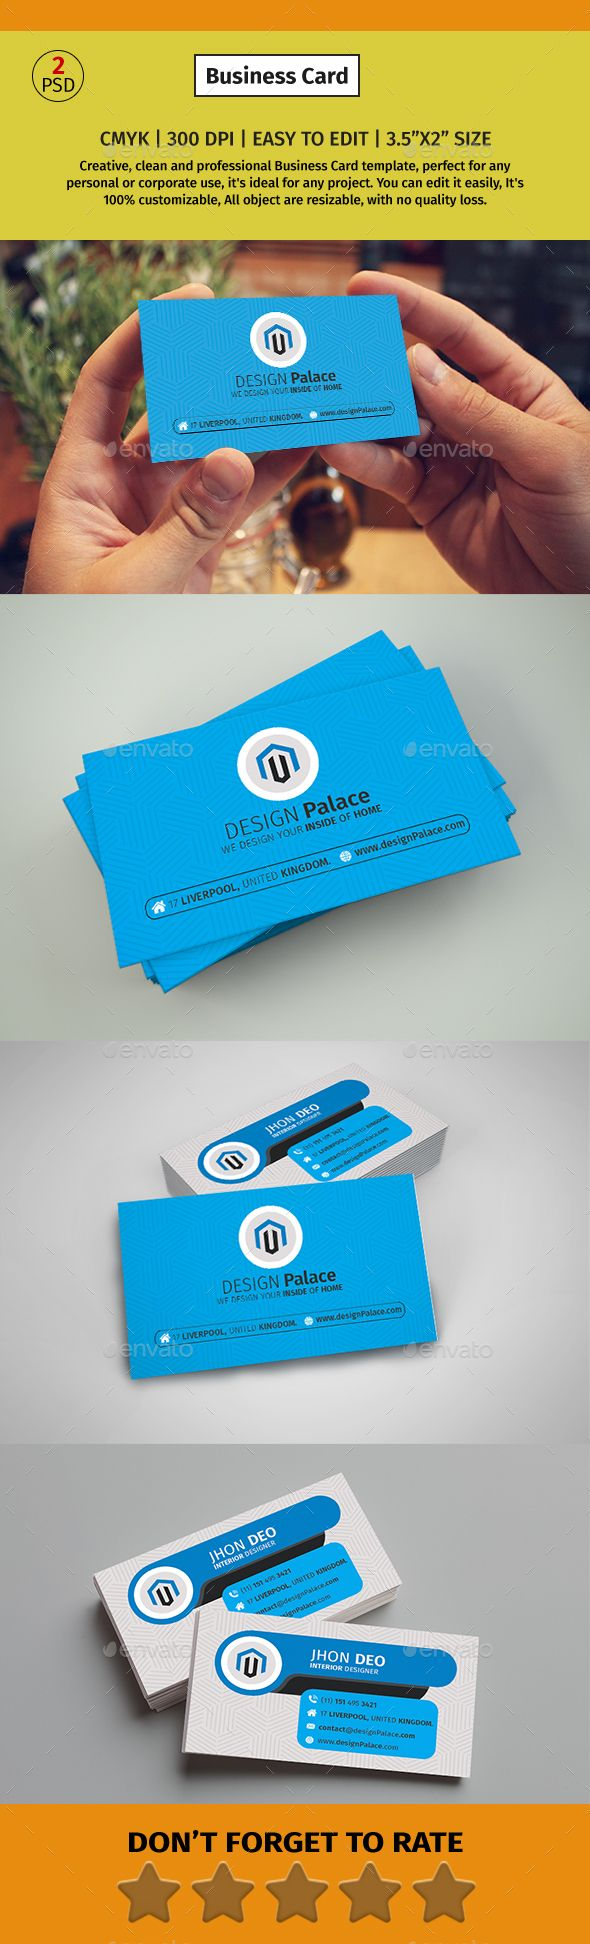 3826 best business card images on pinterest business card design business card 09 reheart Gallery